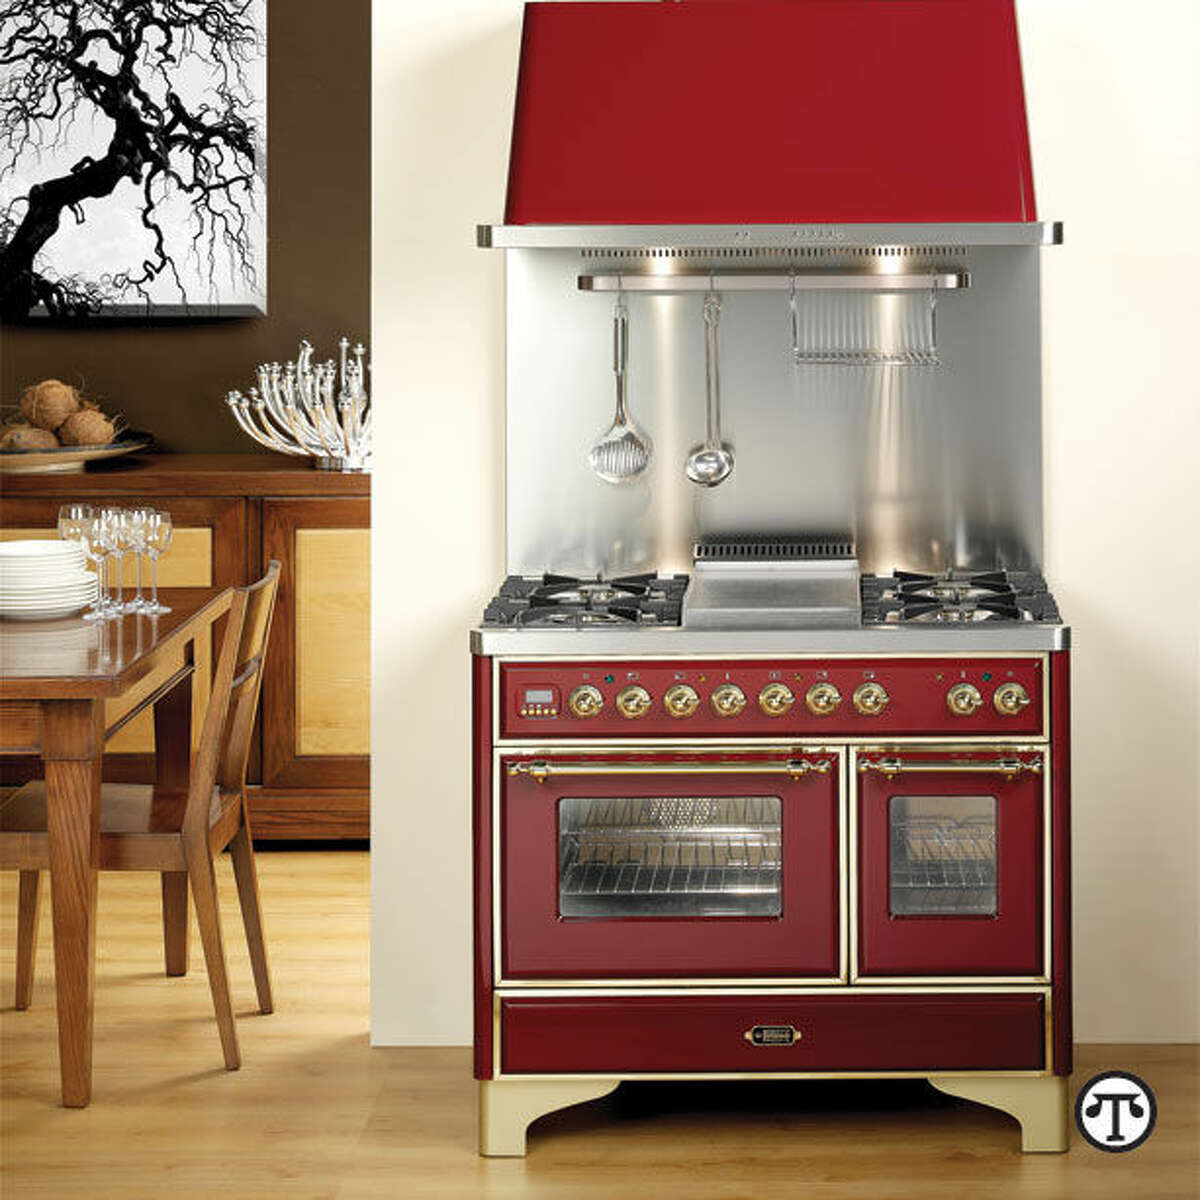 More and more, homeowners want to work with kitchen appliances that work well for them. (NAPS)